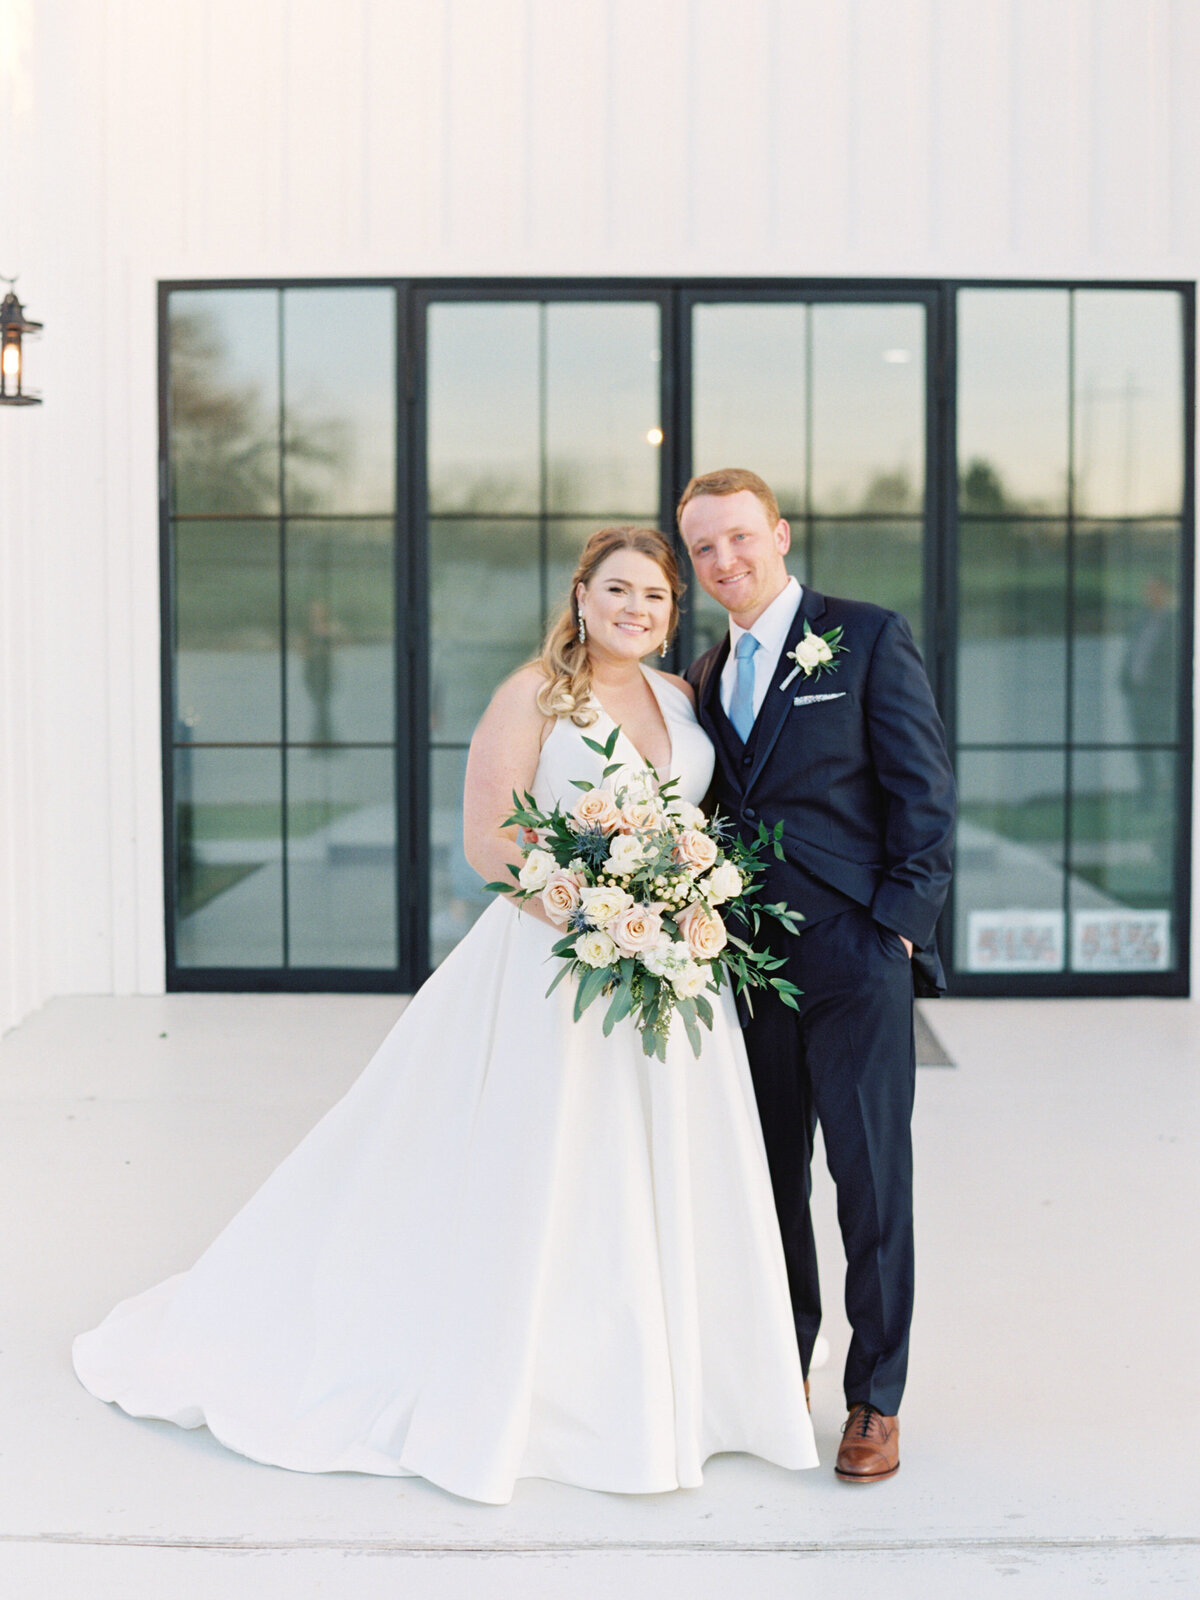 the-farmhouse-wedding-houston-texas-wedding-photographer-mackenzie-reiter-photography-3